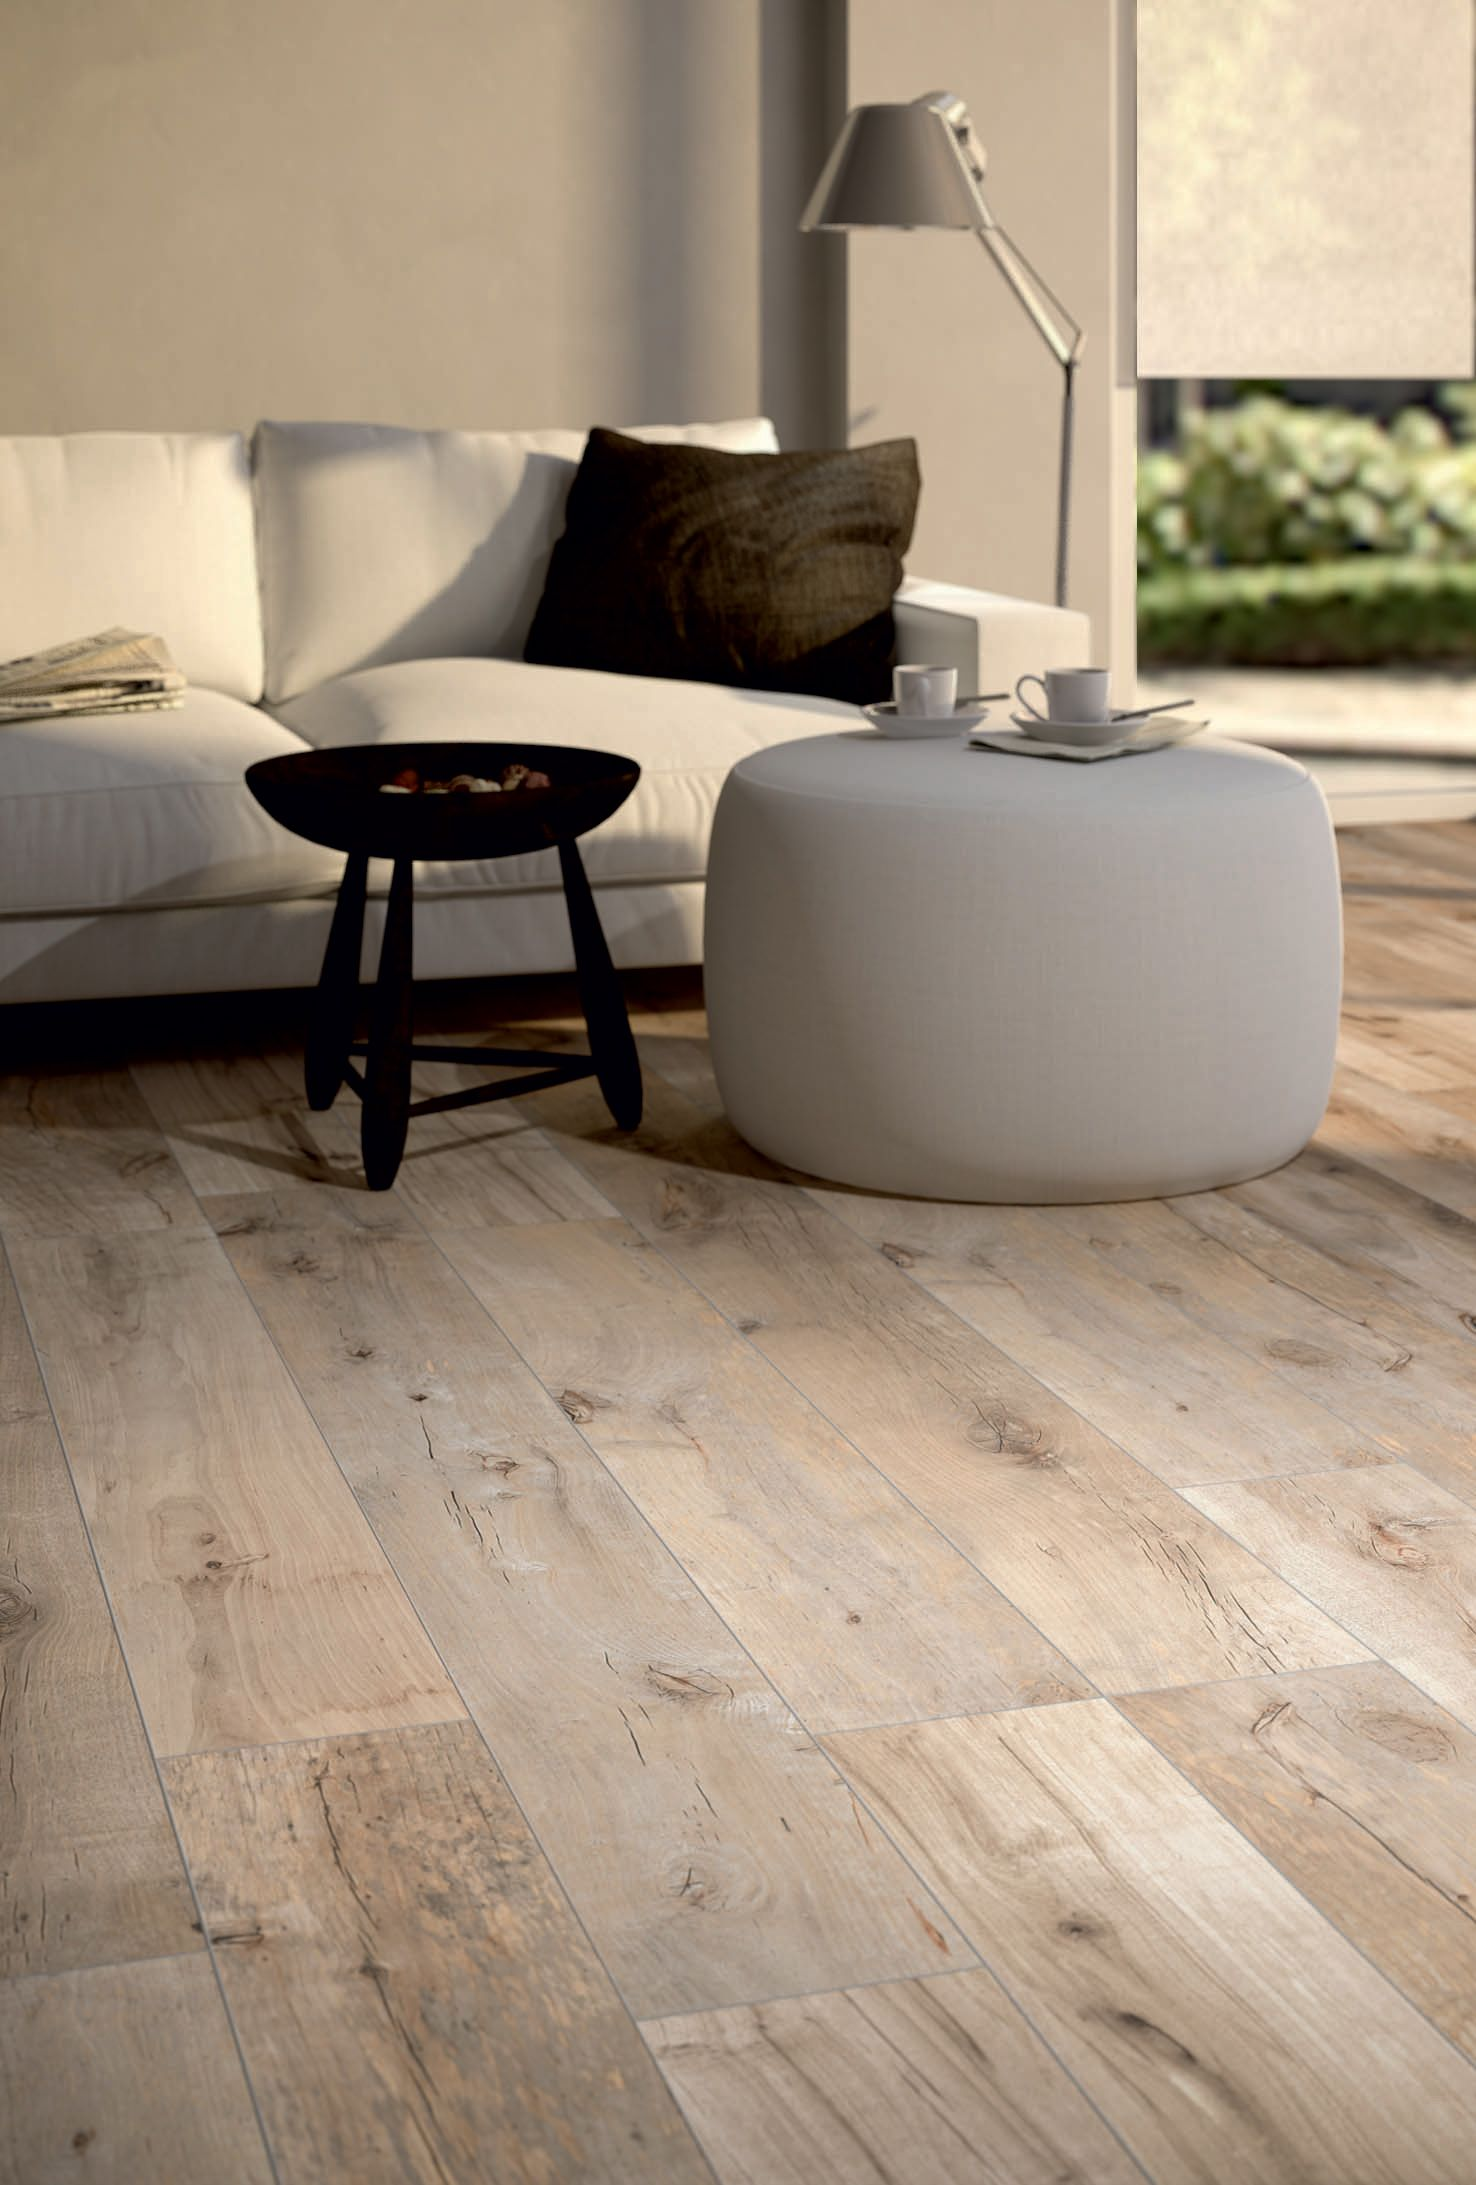 Houtlook Plavuizen Plavuizen Houtlook Google Zoeken Floors Home Flooring